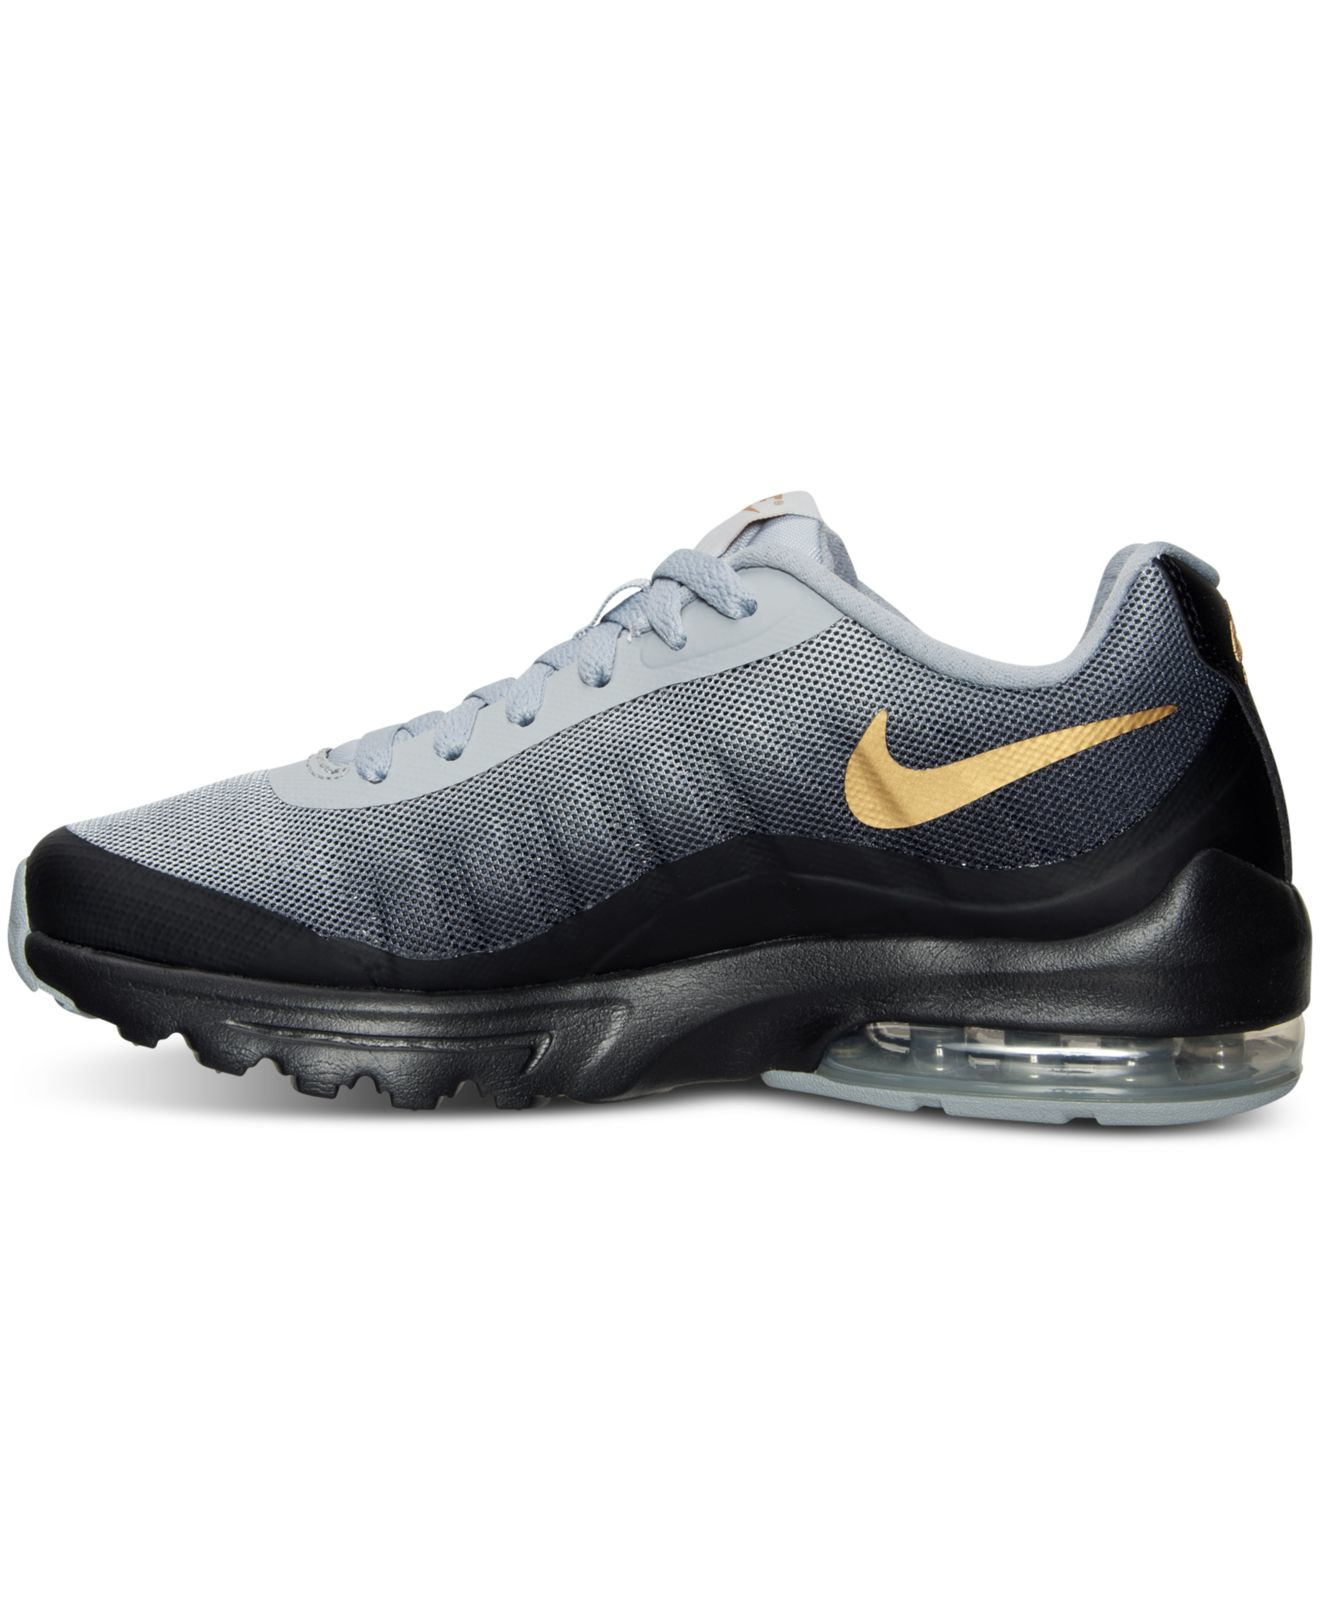 94065f3a0f8 ... czech gallery. previously sold at macys womens nike air max ac2dc dabc1